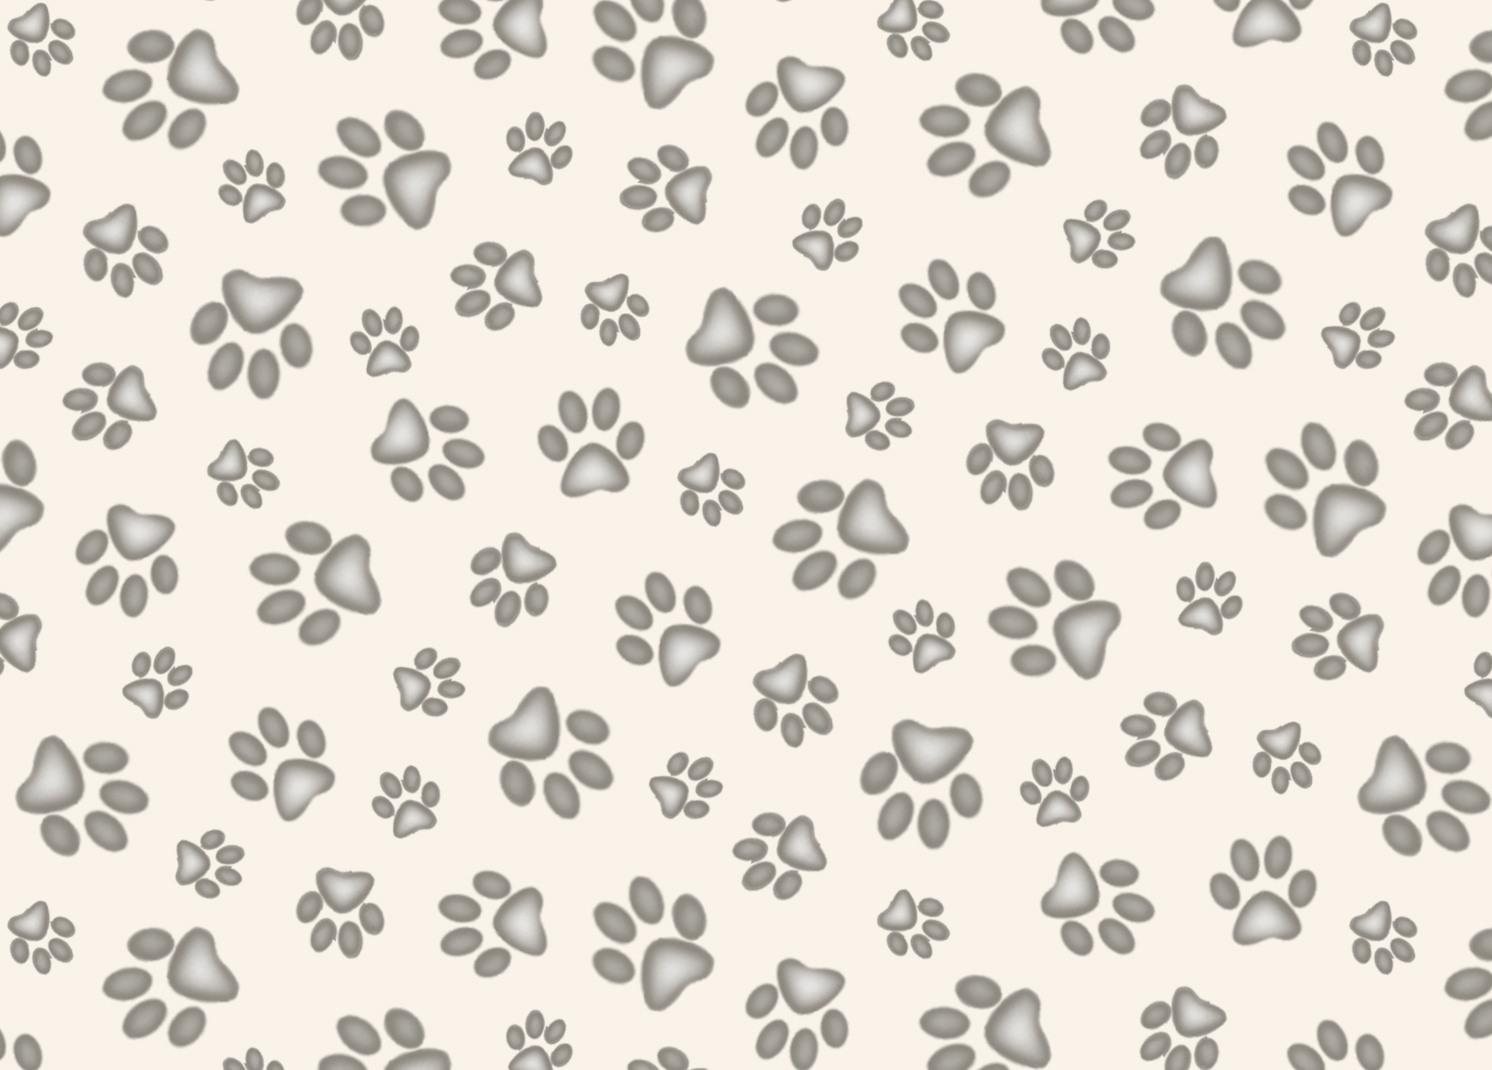 Paw Wallpapers - Wallpaper Cave